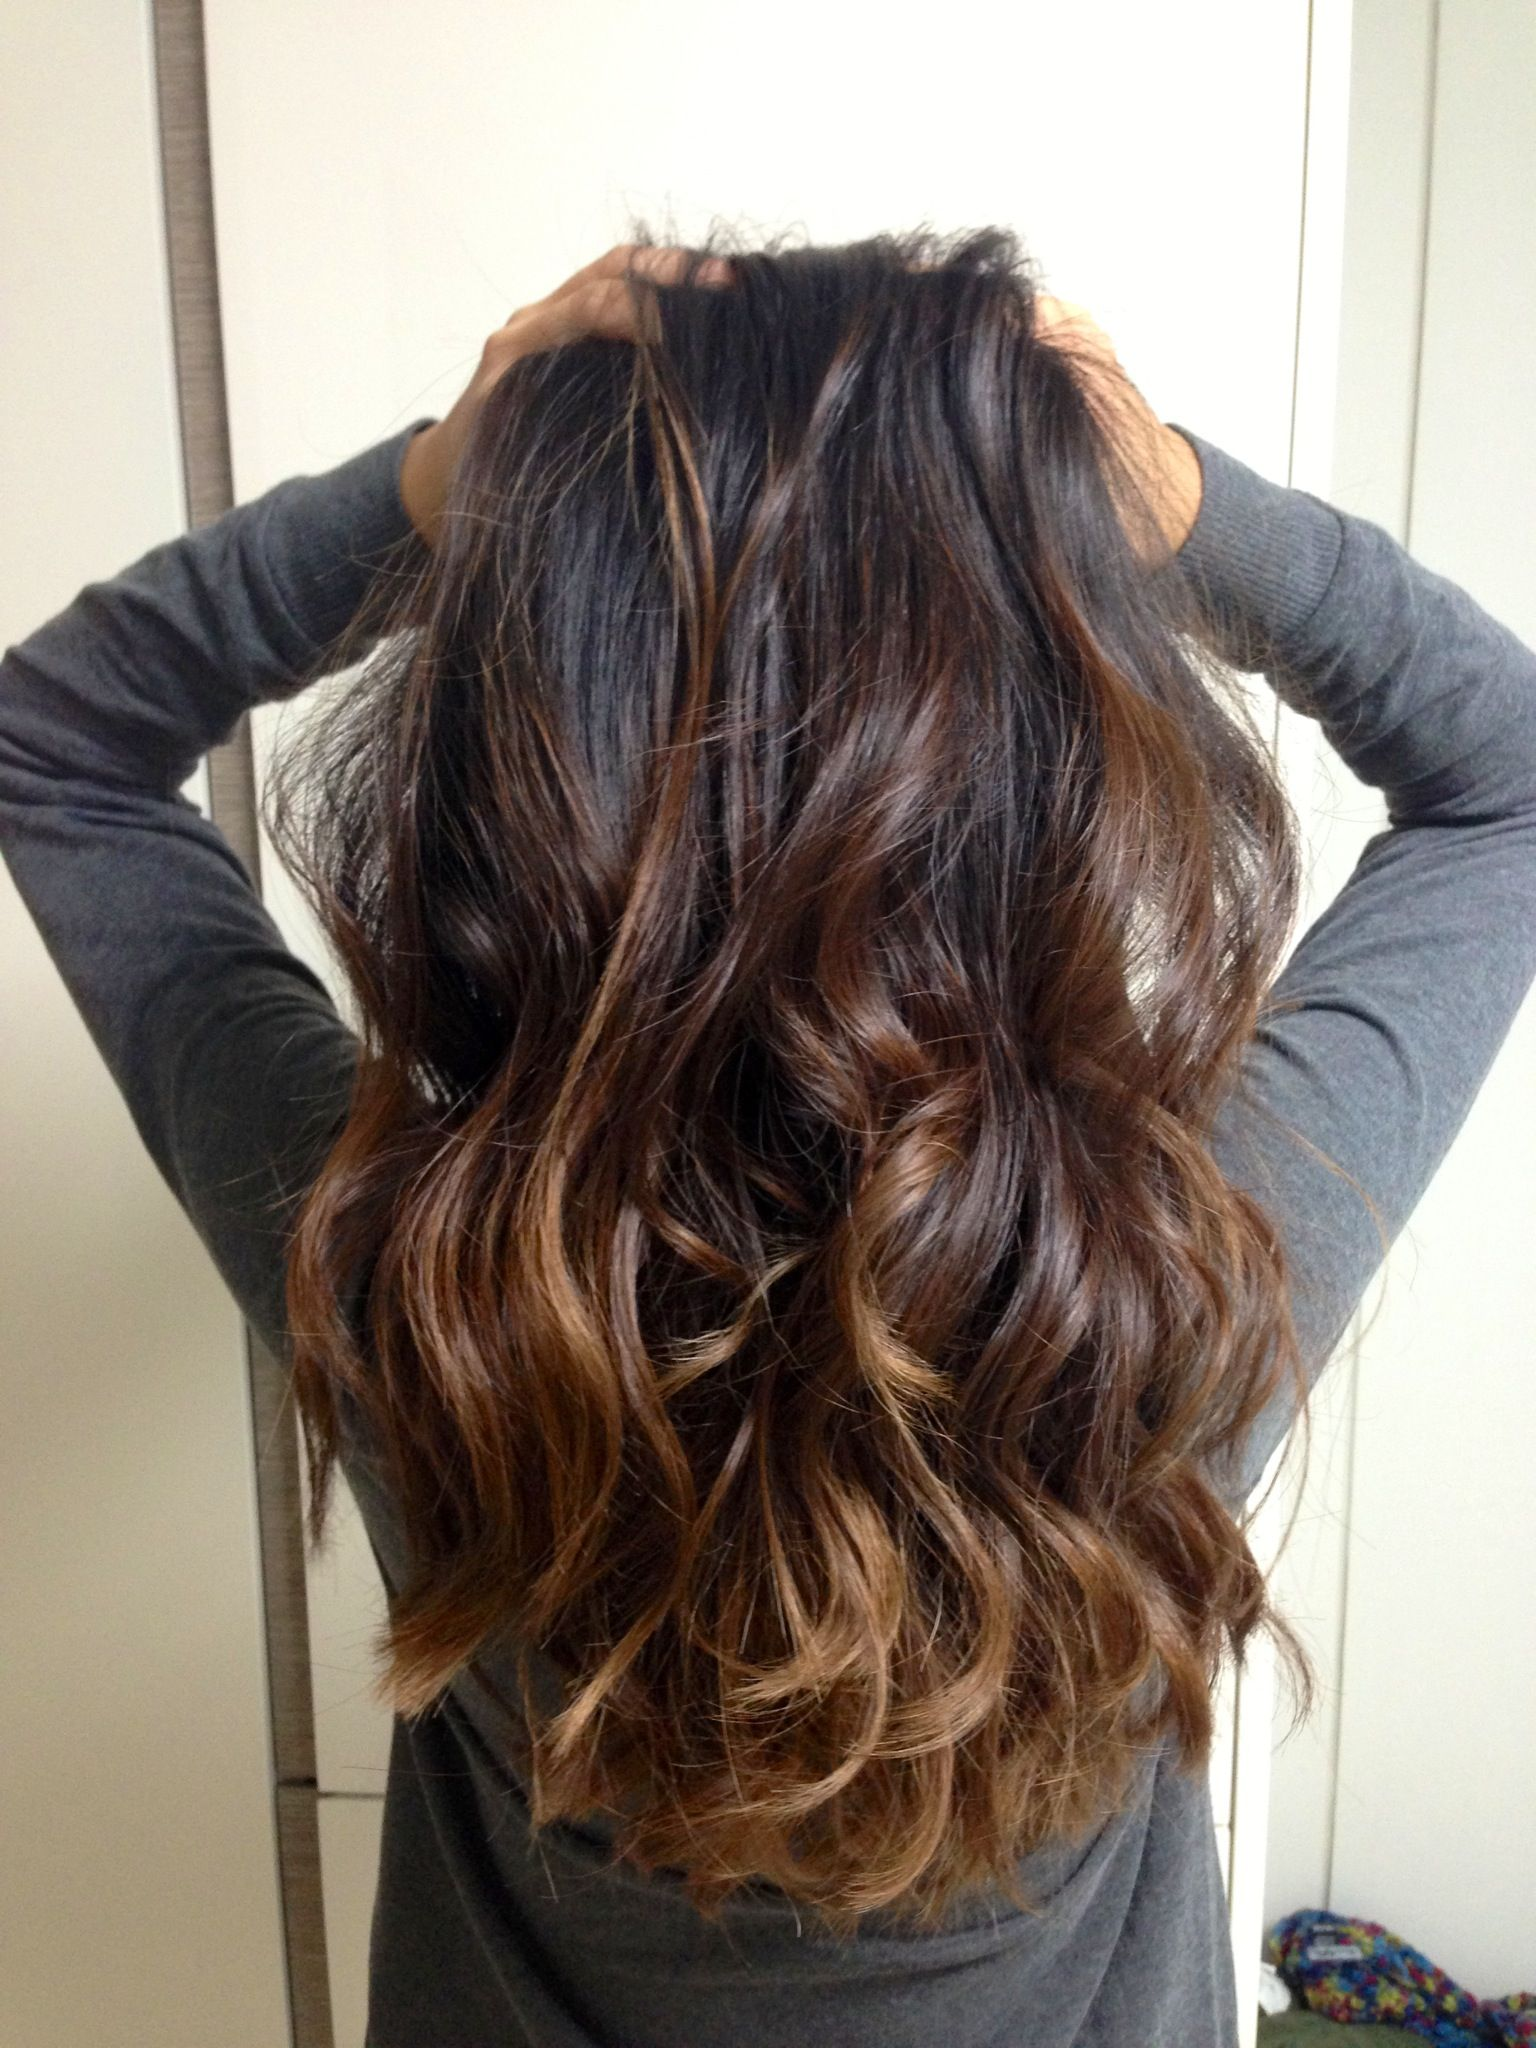 1000 images about ombre hair on pinterest ombre hair - Ombre hair blond selber machen ...